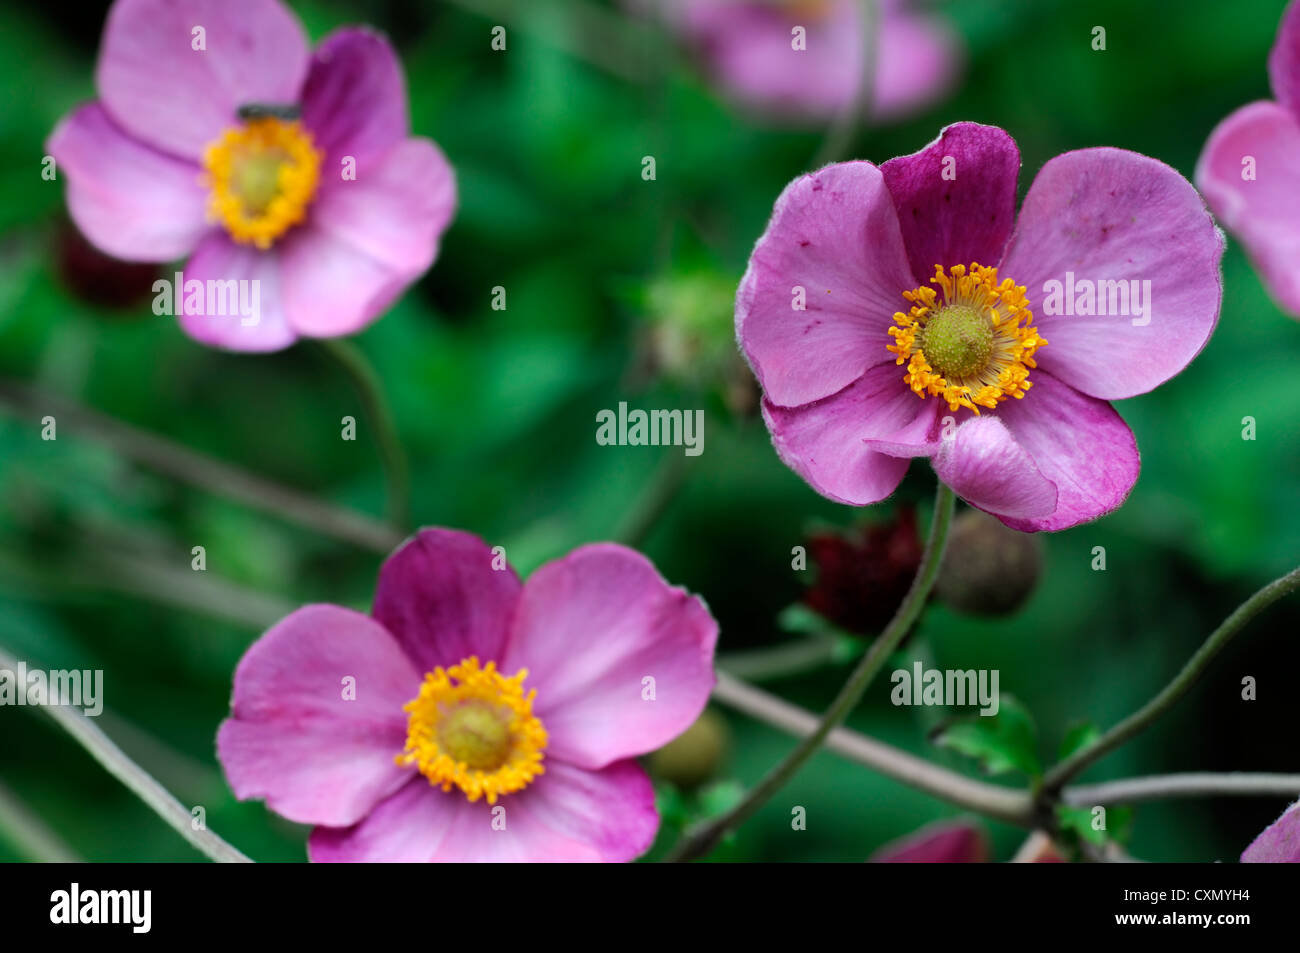 Anemone huphensis japanese anemone flower pink purple yellow eye anemone huphensis japanese anemone flower pink purple yellow eye autumn autumnal fall perennial flowering mightylinksfo